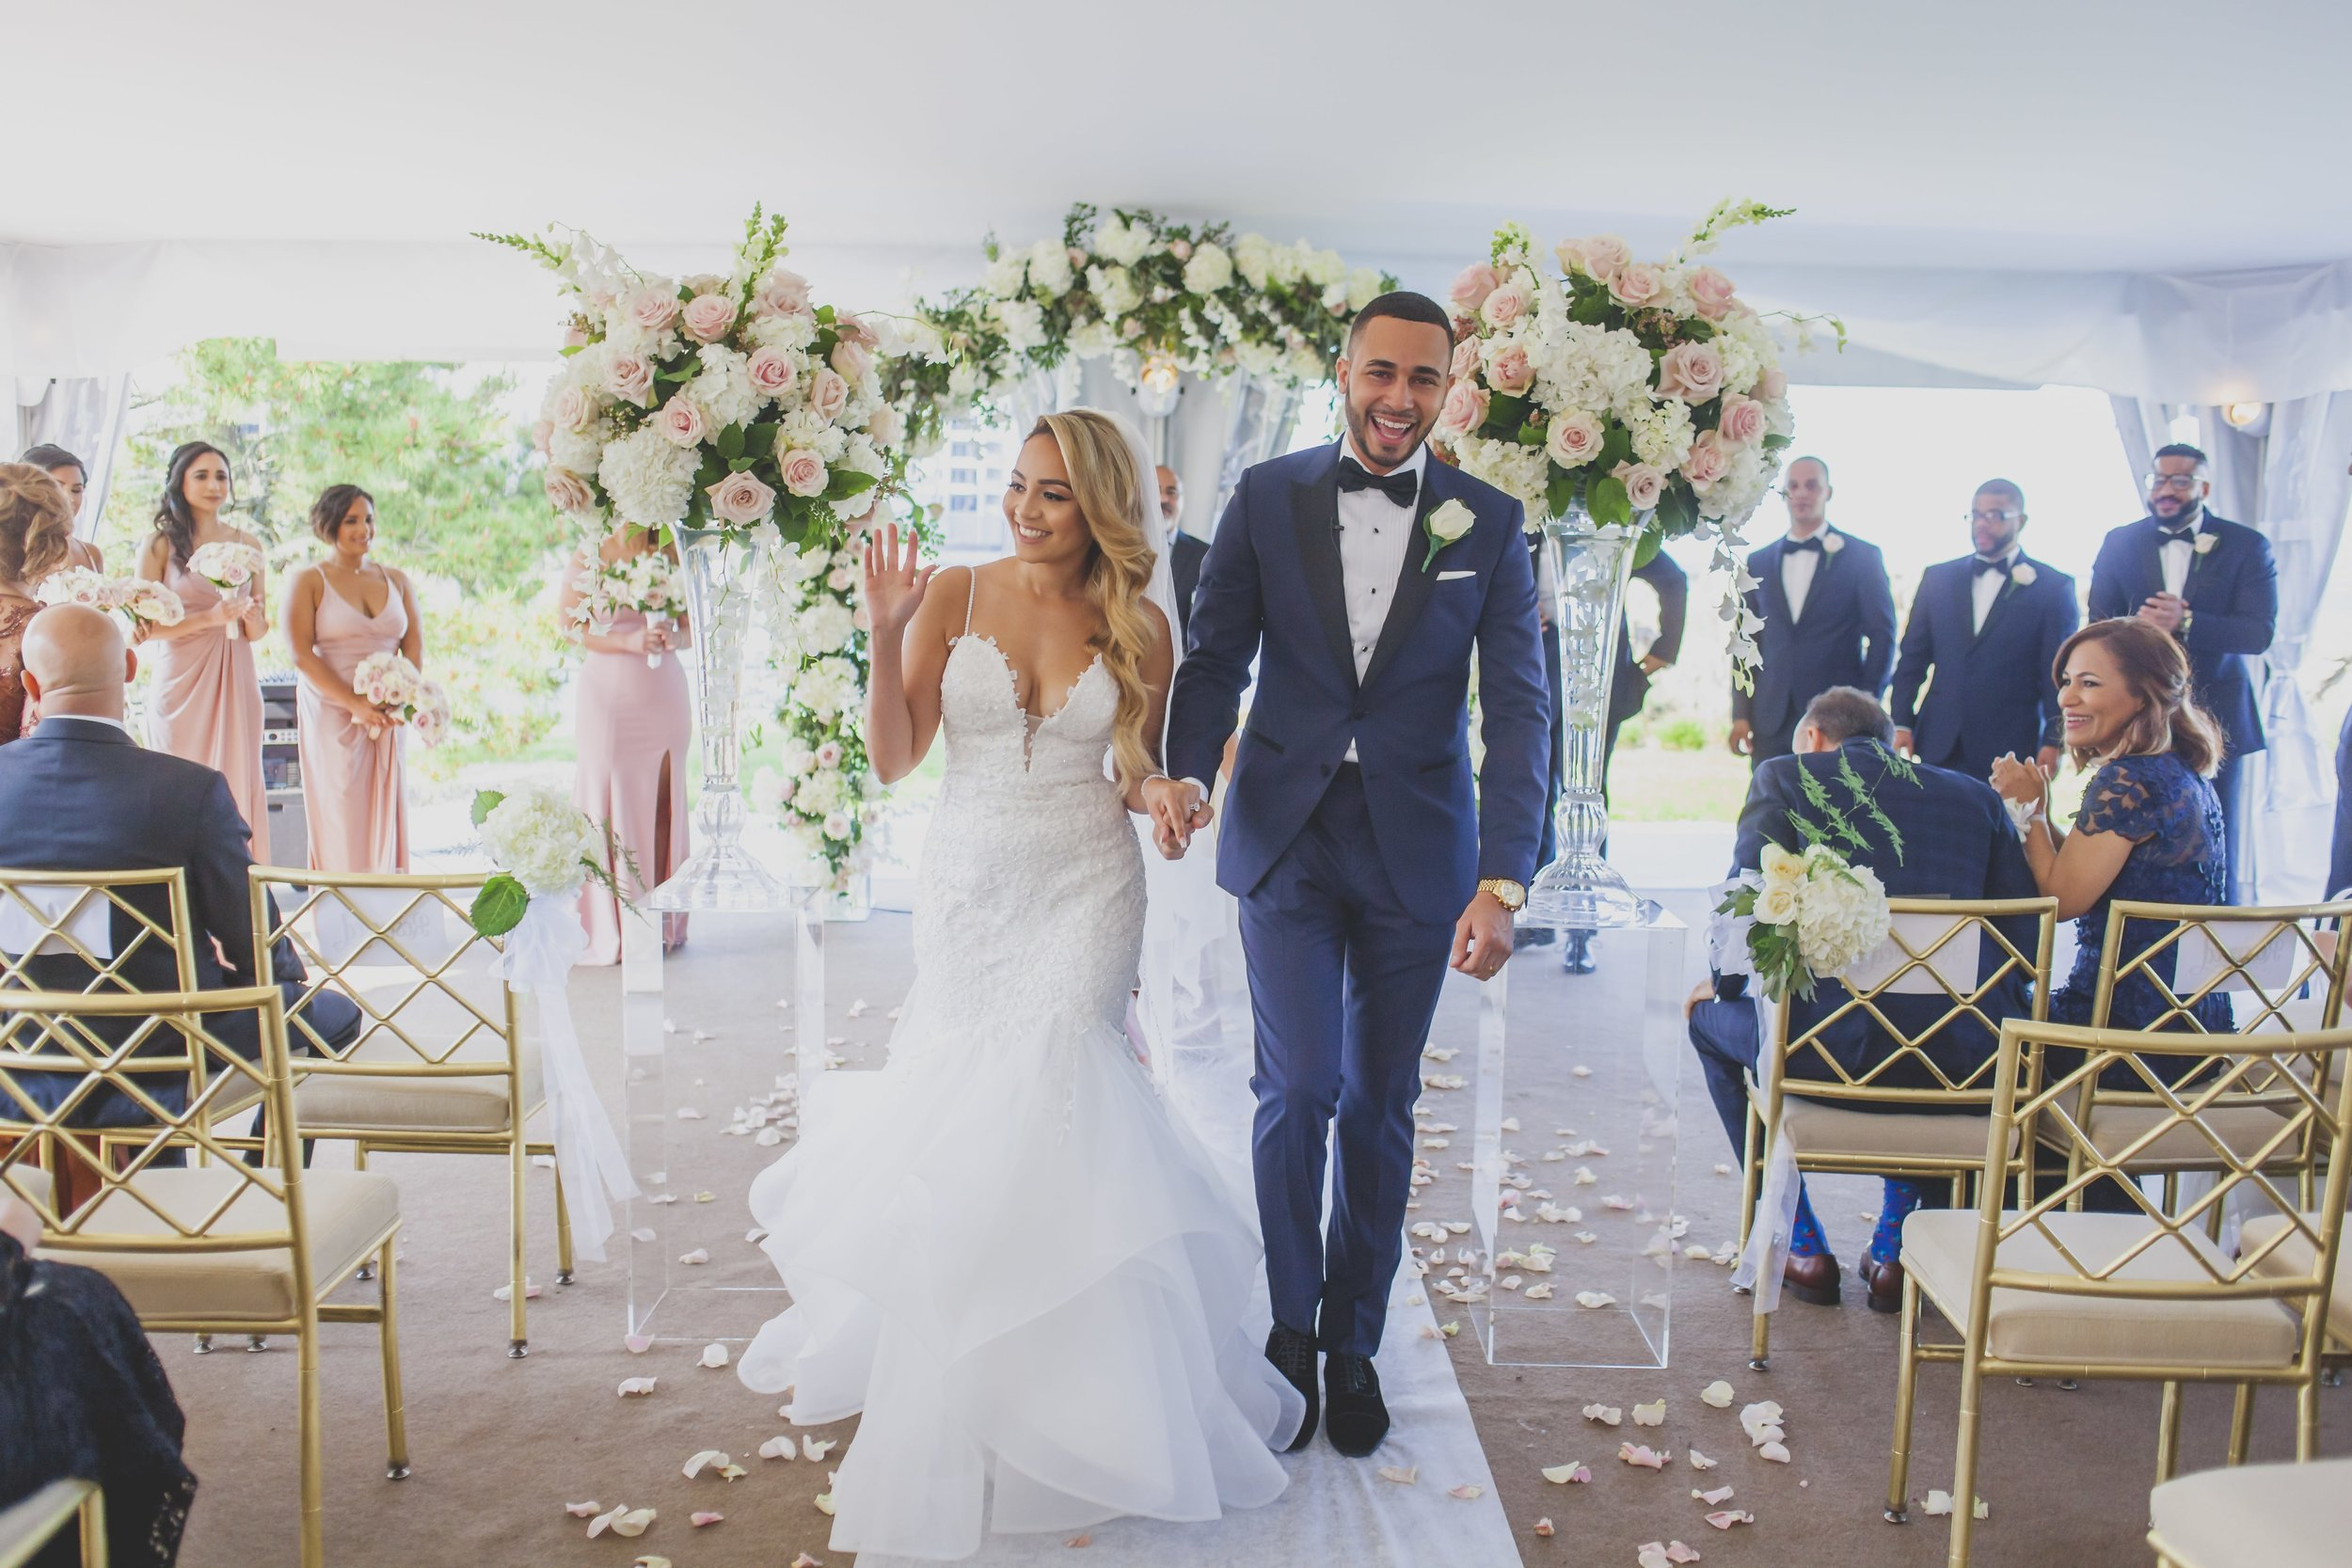 Summer Wedding Trends 2019 - Bride and groom exit their ceremony.